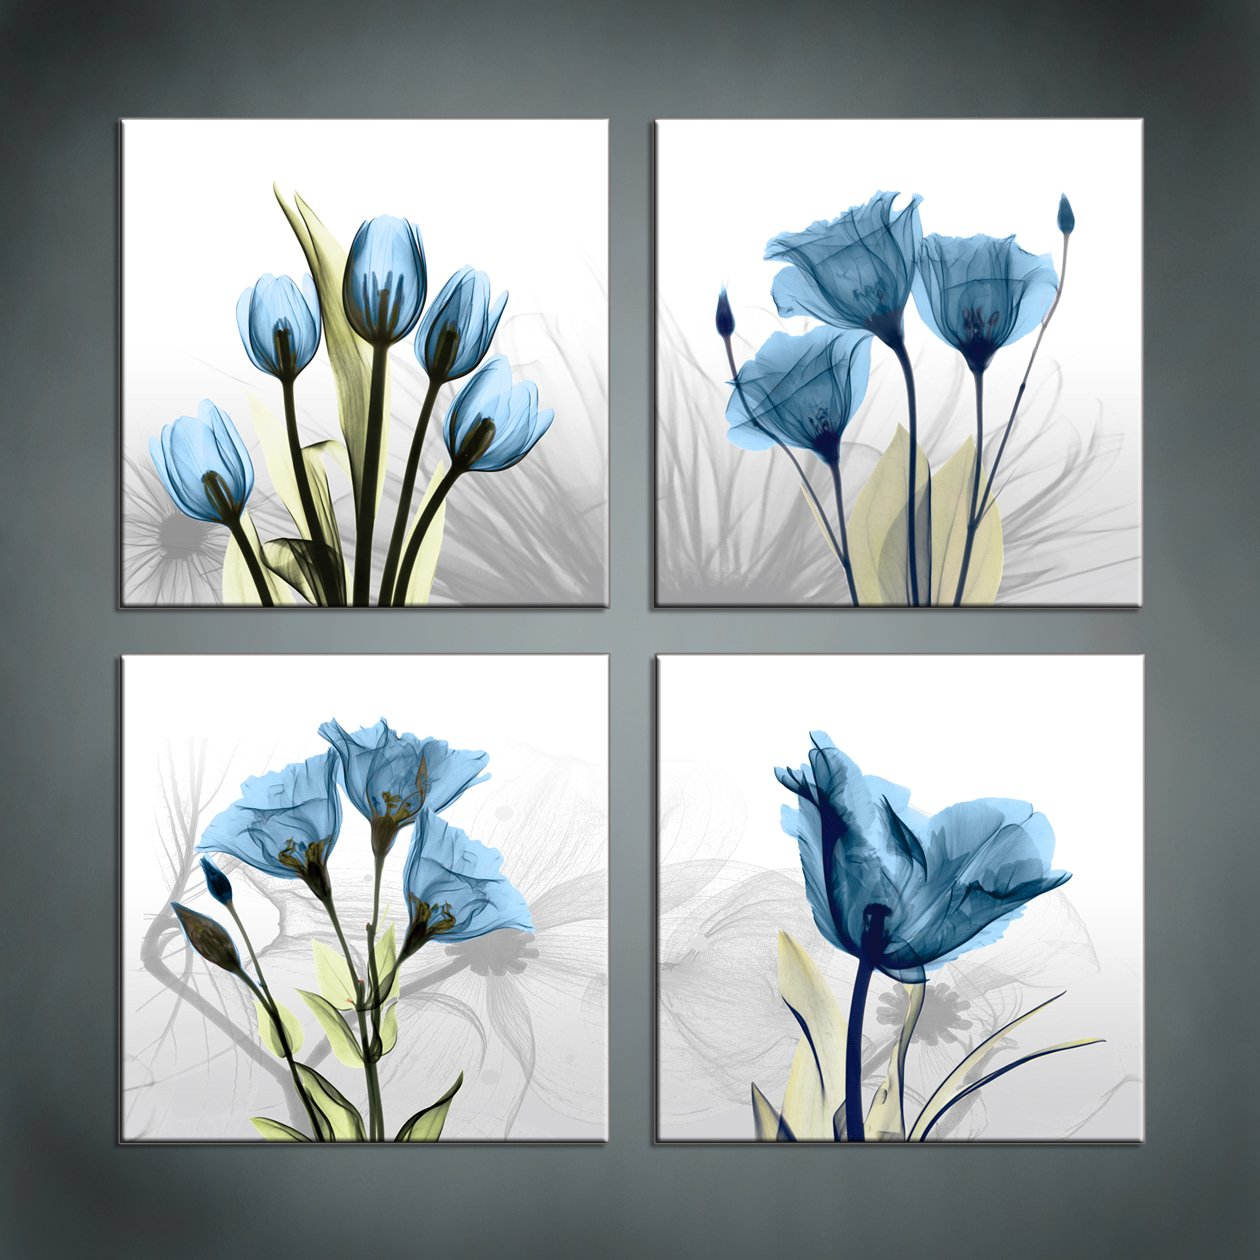 Moyedecor Art - 4 Panel Elegant Tulip Flower Canvas Print Wall Art Painting For Living Room Decor And Modern Home Decorations (Four 12X12in, Blue flower prints framed) by Moyedecor Art